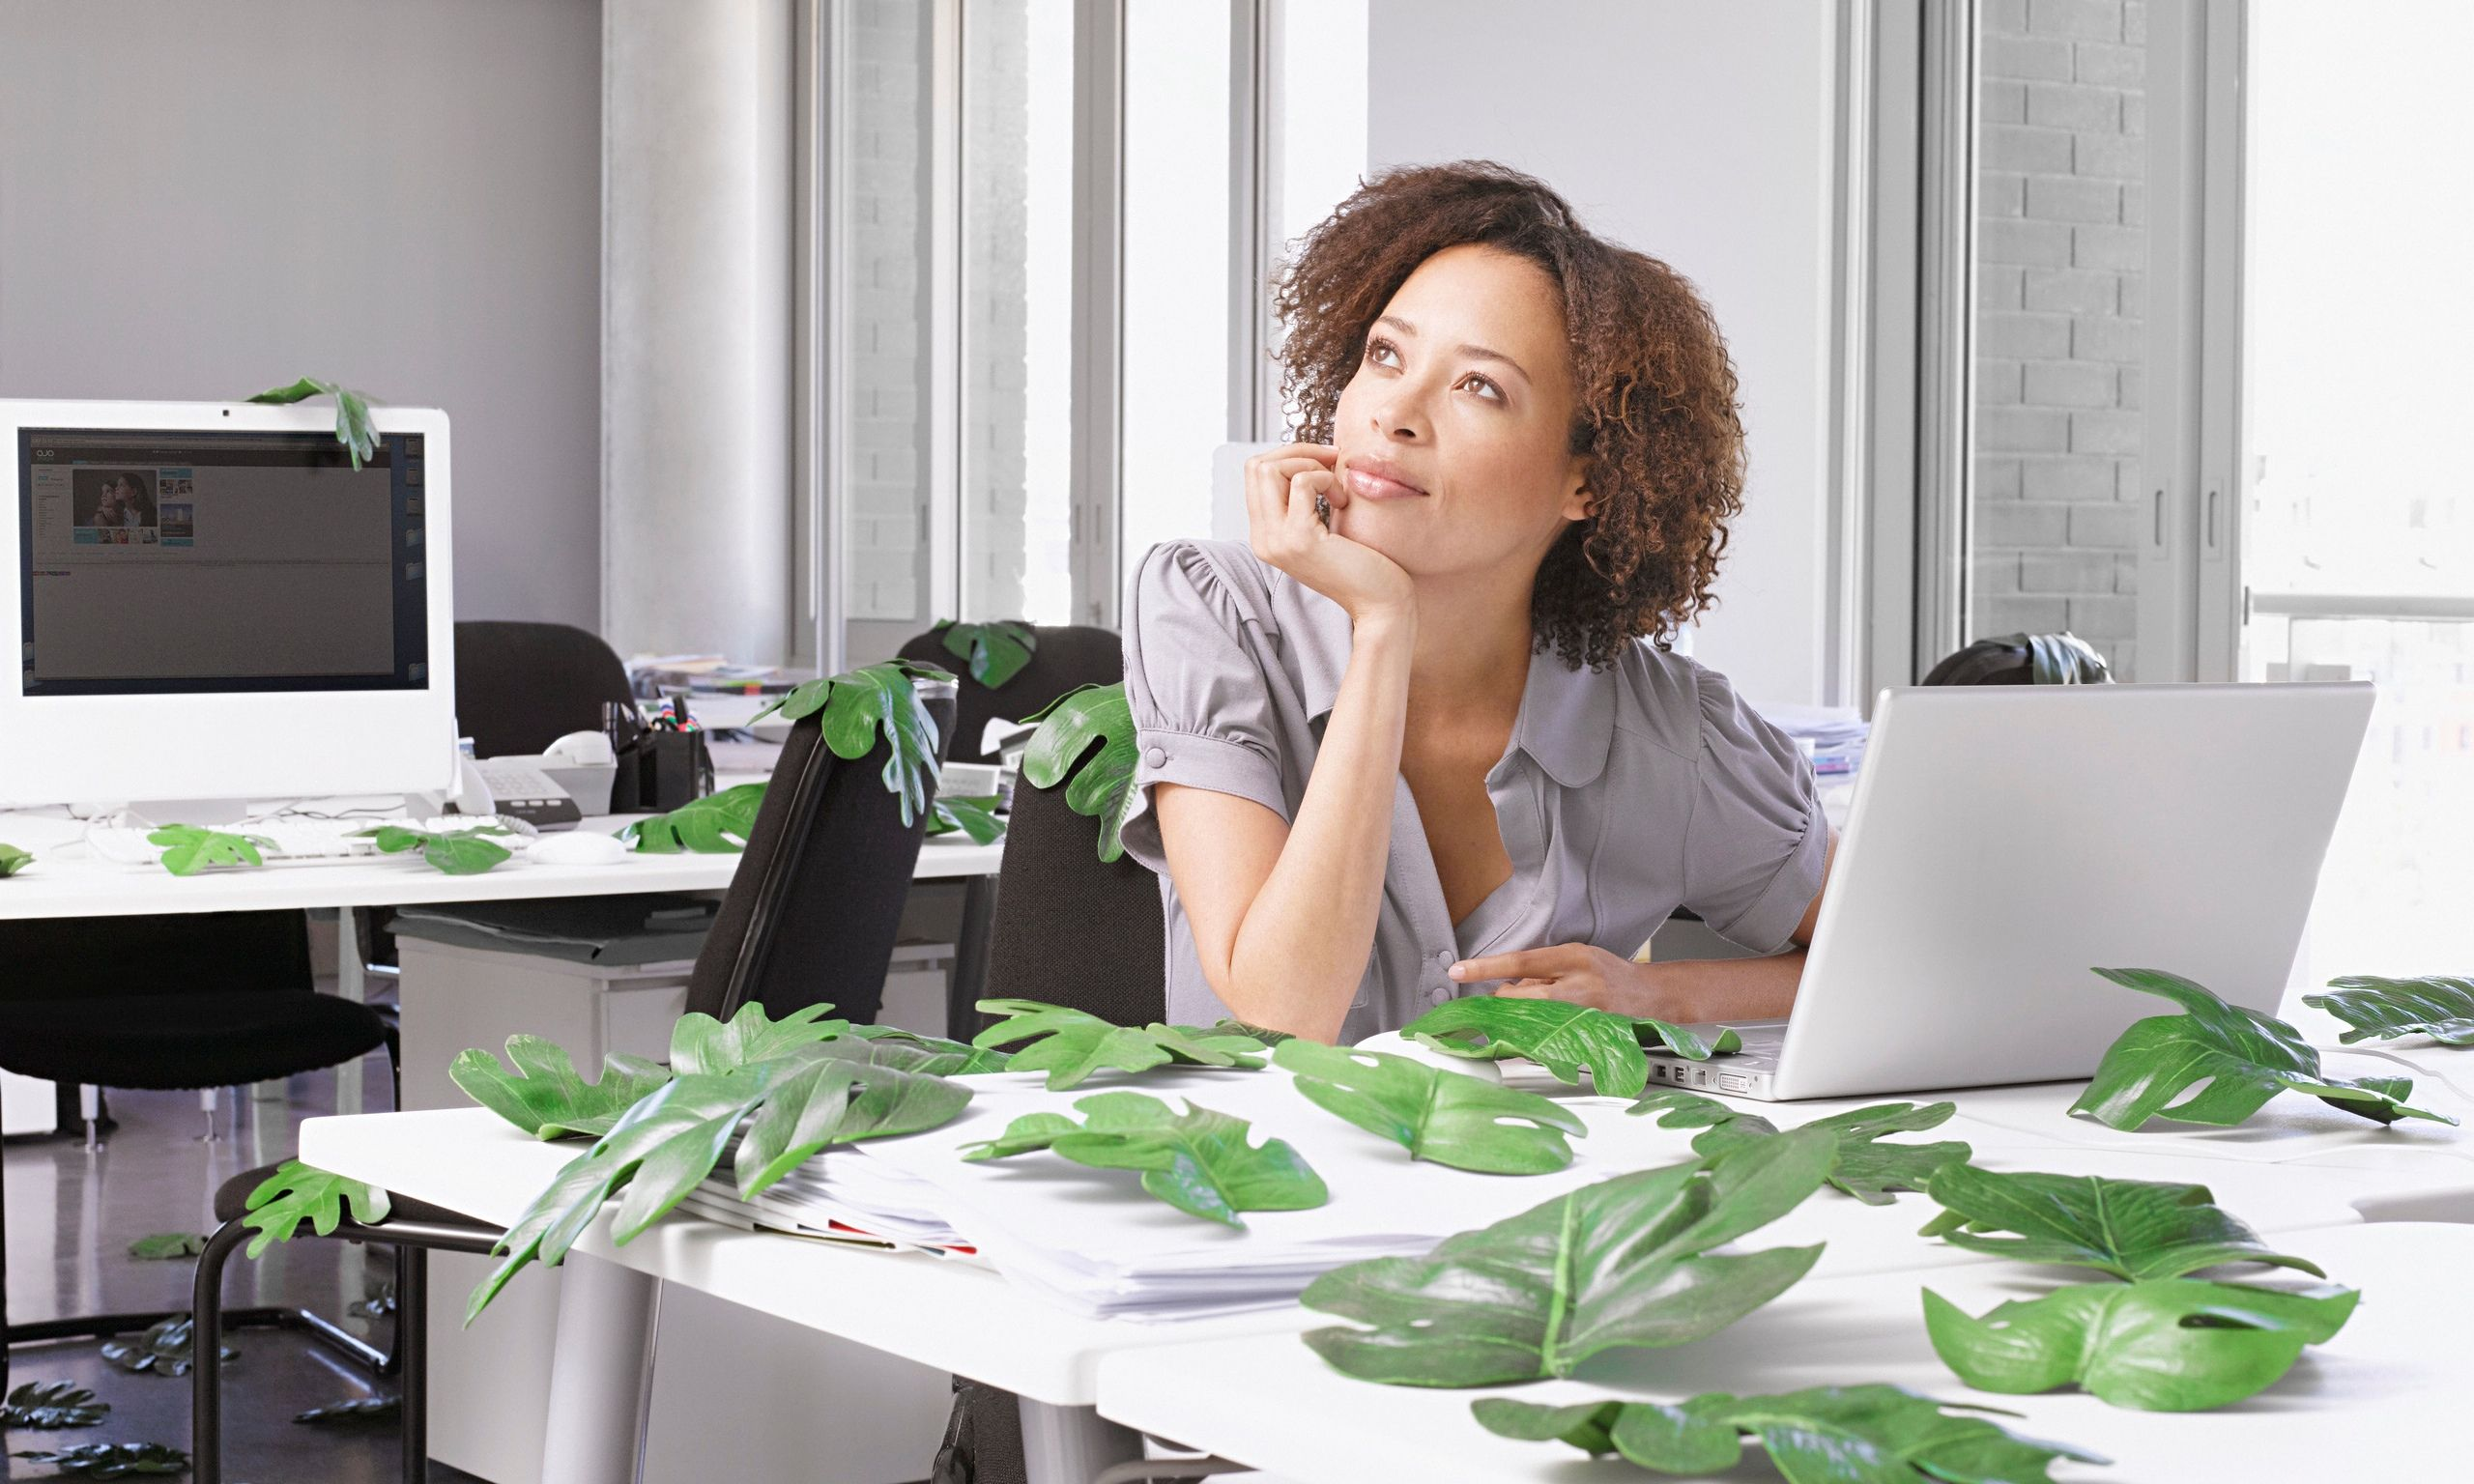 How To Manage Workplace Stress In Five Simple Steps